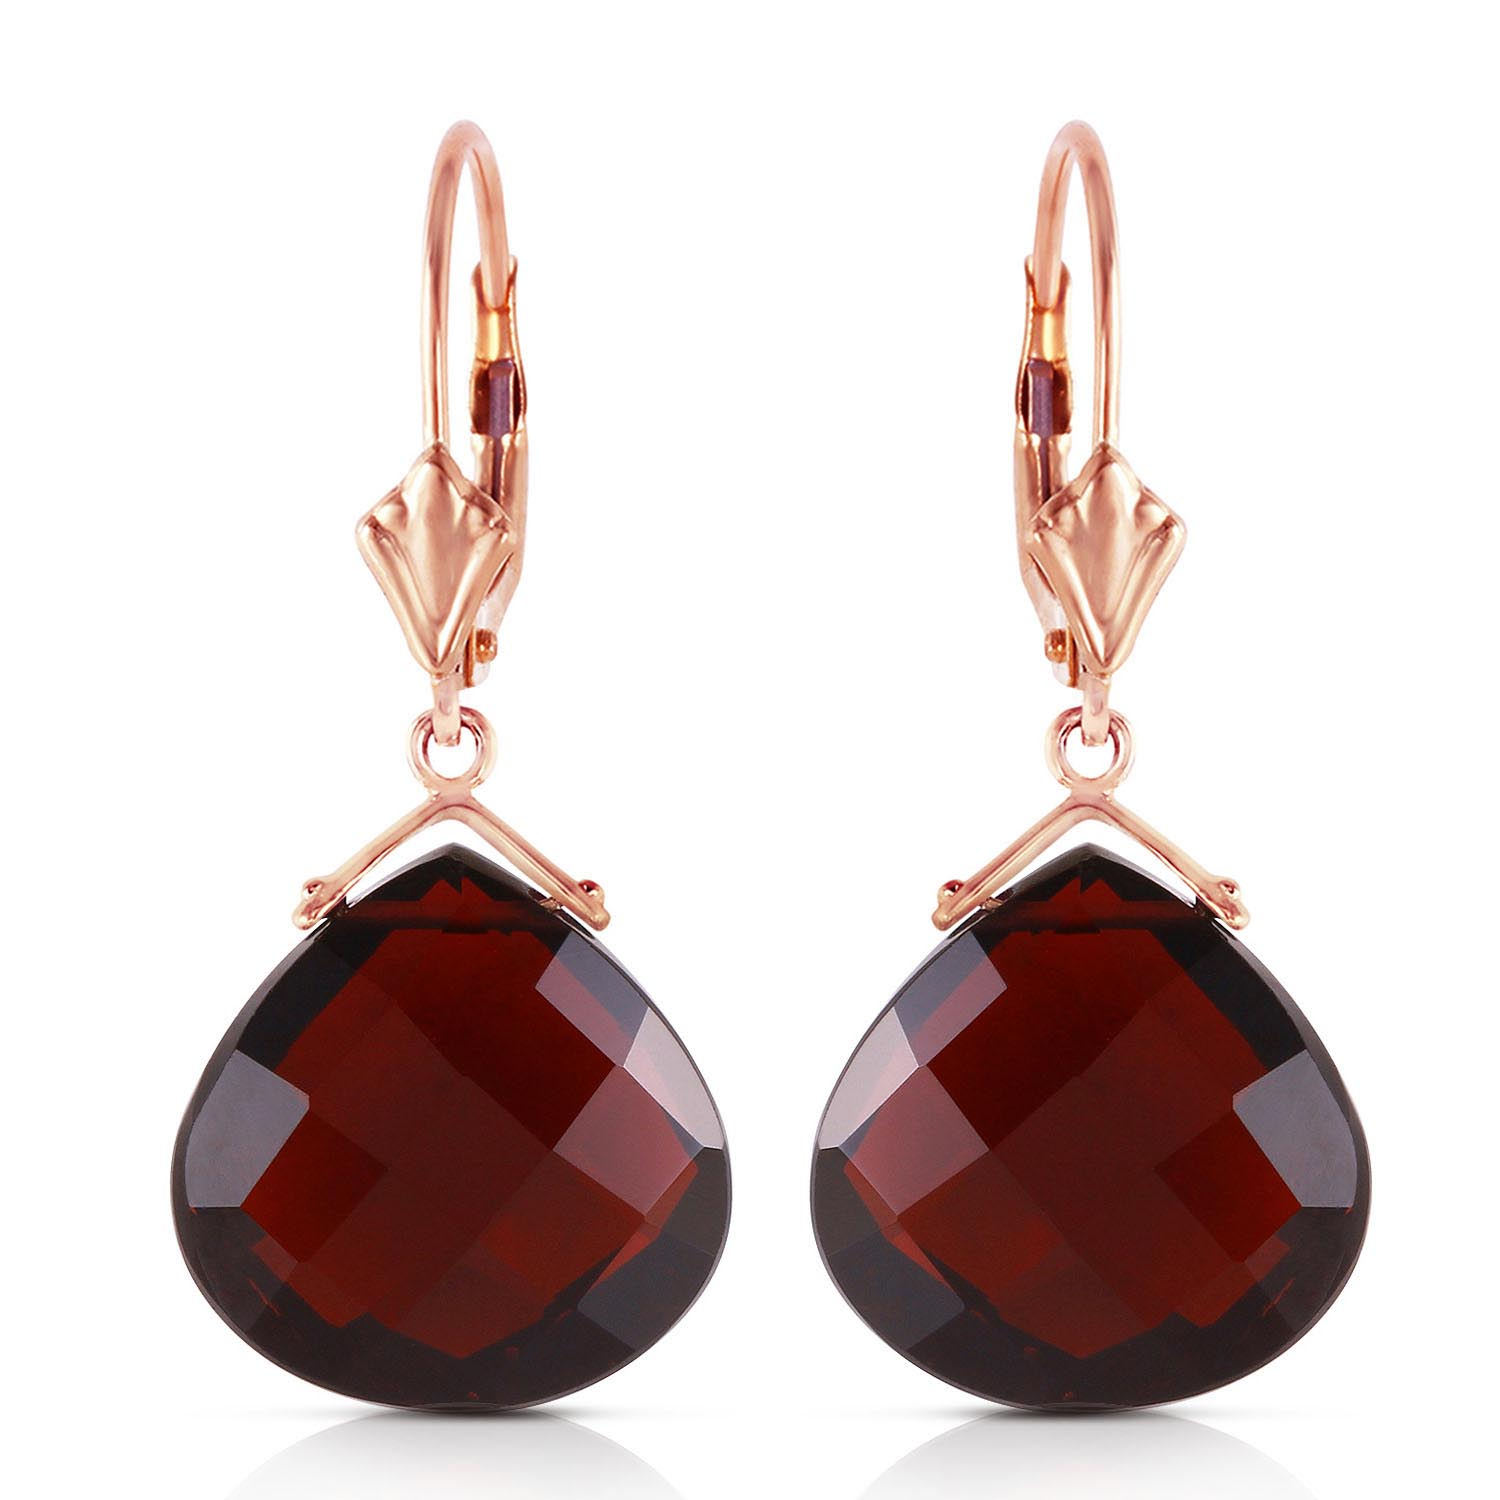 Garnet Star Heart Drop Earrings 17.0ctw in 9ct Gold